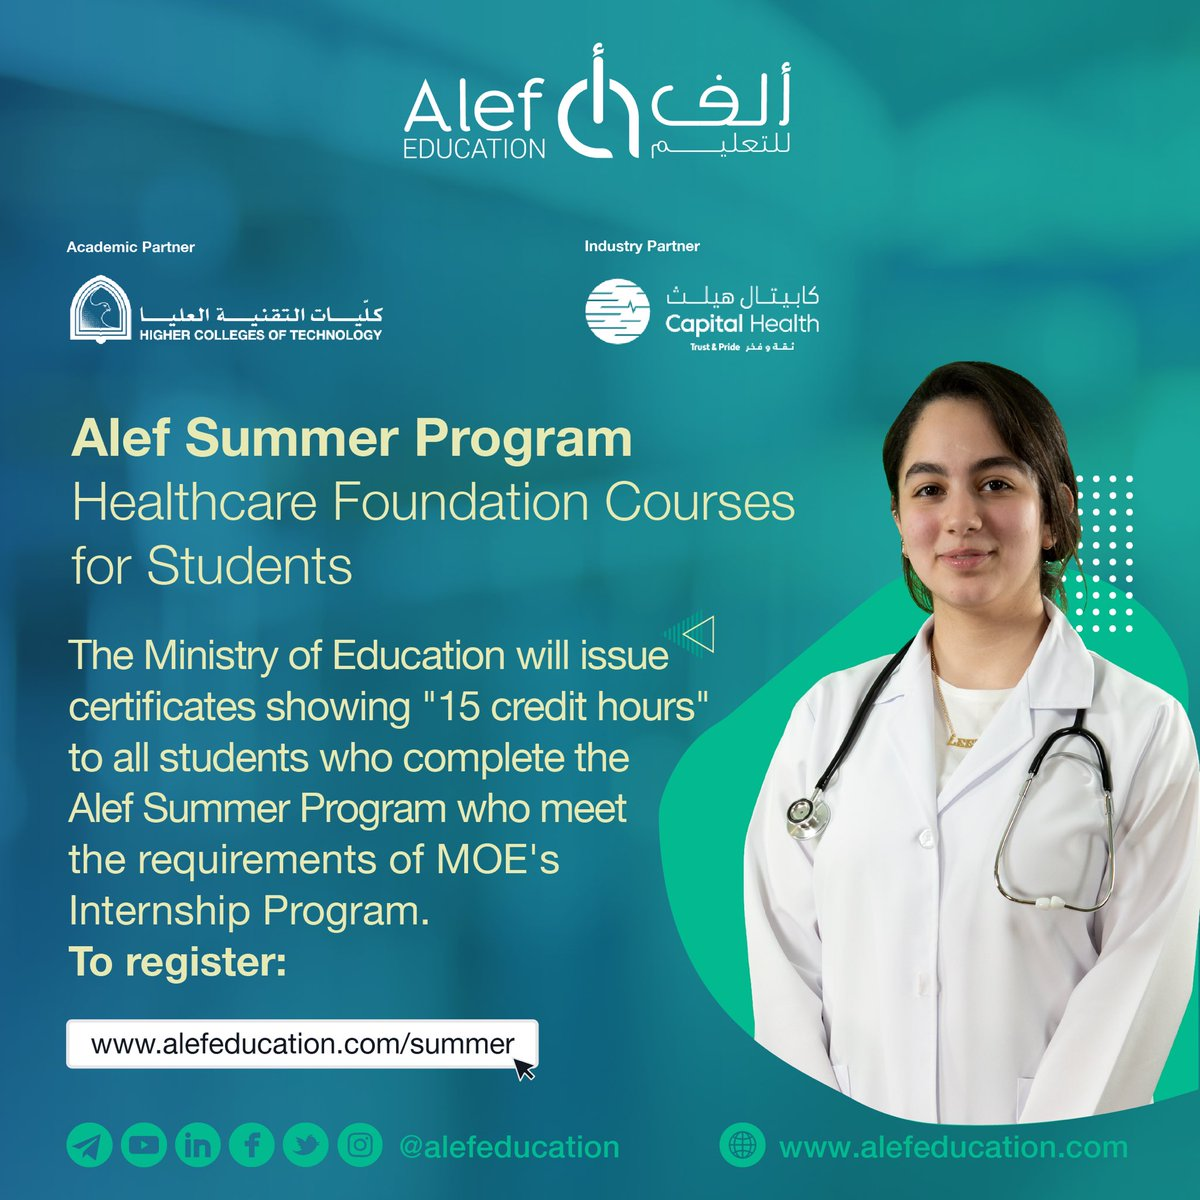 """The Ministry of Education will issue certificates showing """"15 credit hours"""" to all students who complete the Alef Summer Program who meet the requirements of MOE's Internship Program.  To register:  https://t.co/b91Sh1QTq5    Contact us on: summer@alefeducation.com 600552533 https://t.co/1DQHgDUWMv"""